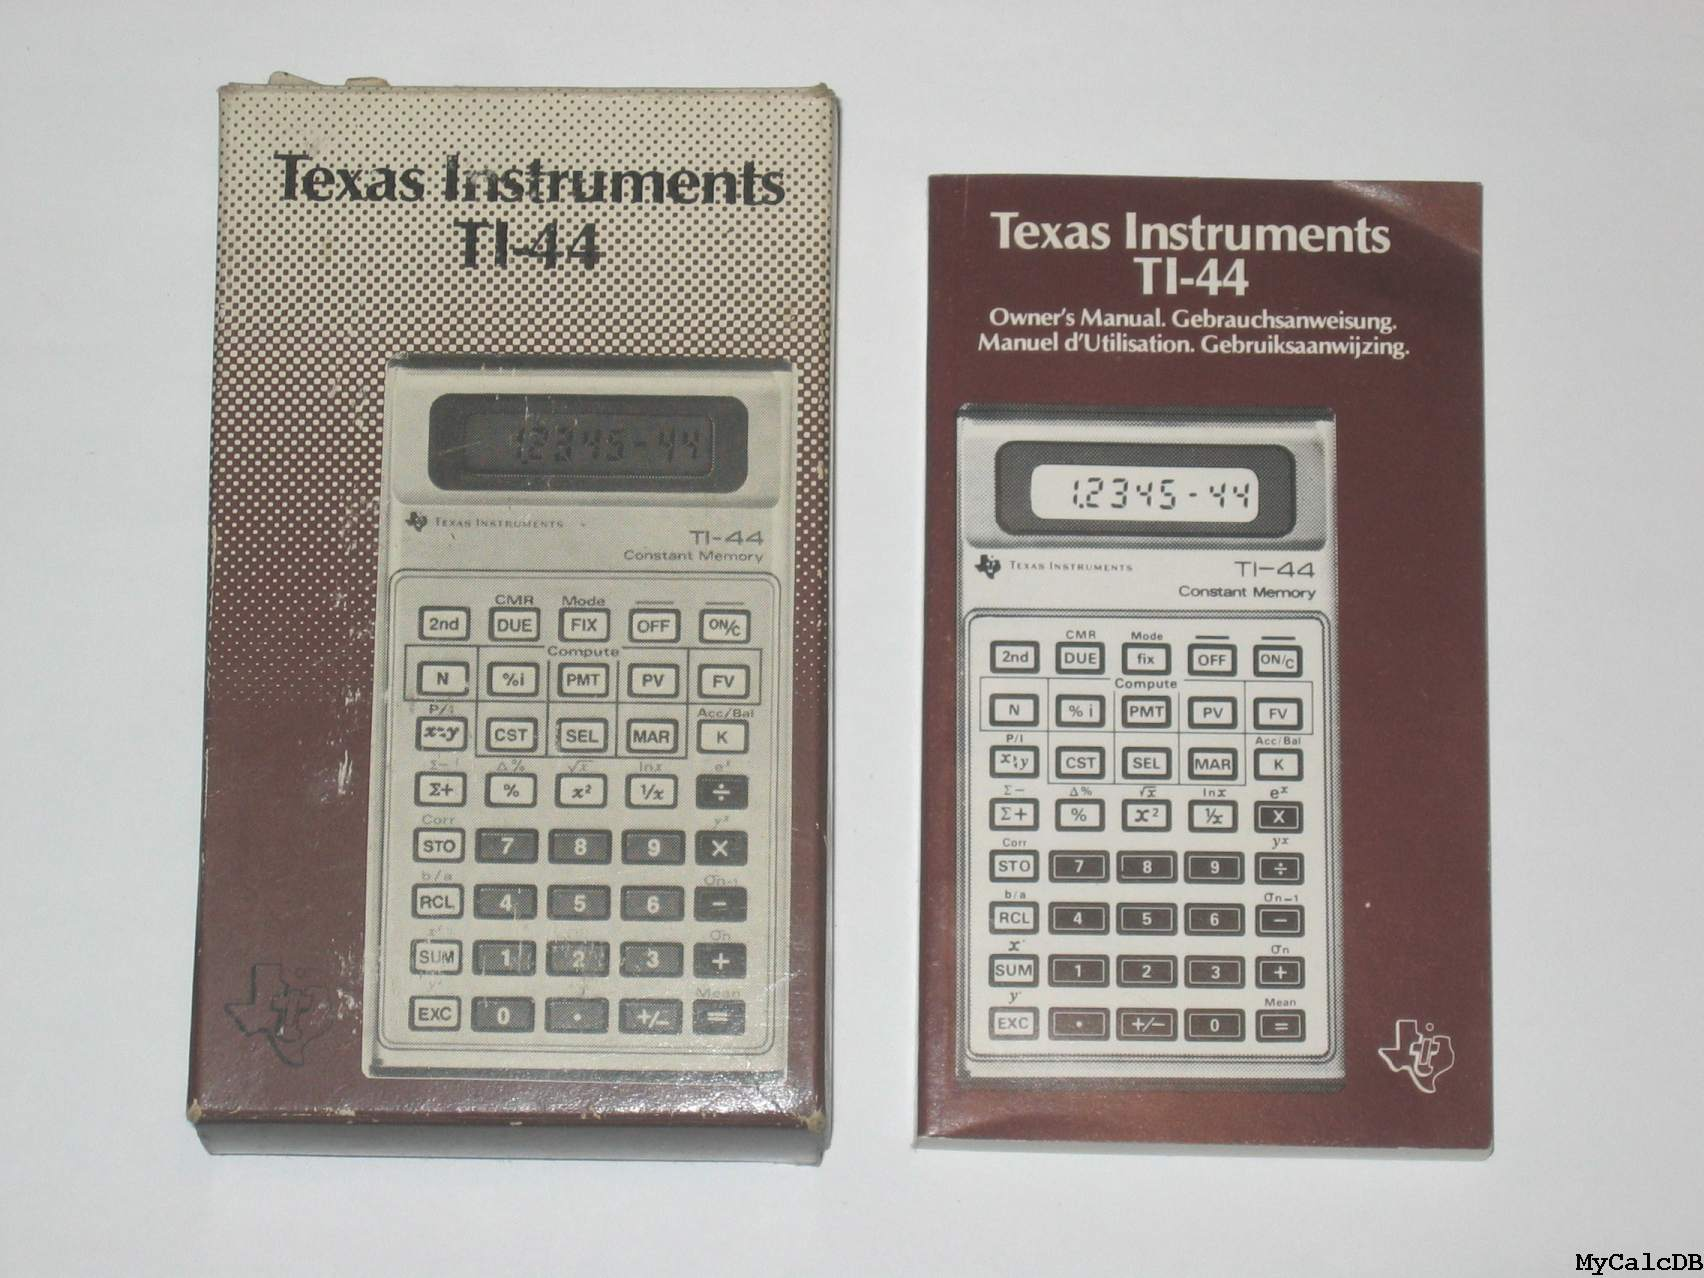 Texas Instruments TI-44